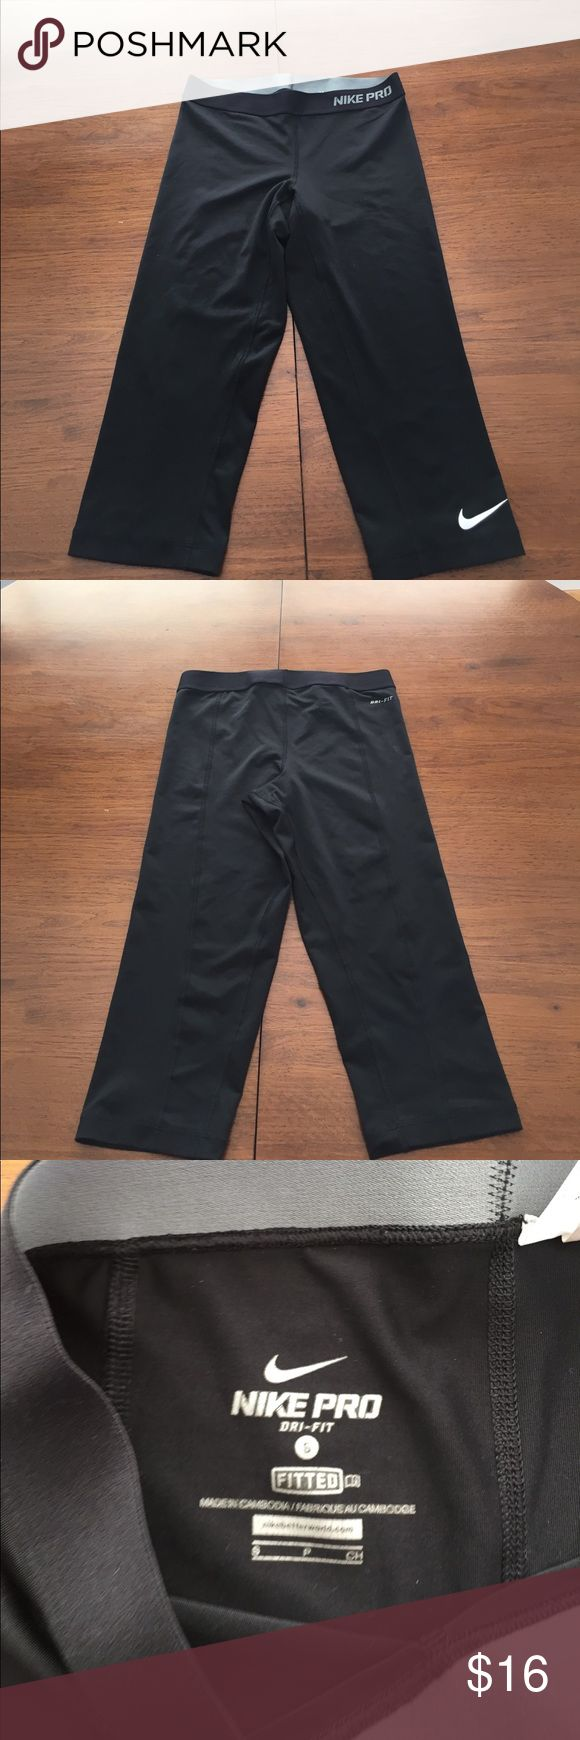 Nike Pro Combat Capris Nike Pro Combat Capris Pants . Fitted . Great for your active life. In good condition. No holes, tears, or stains Nike Pants Capris